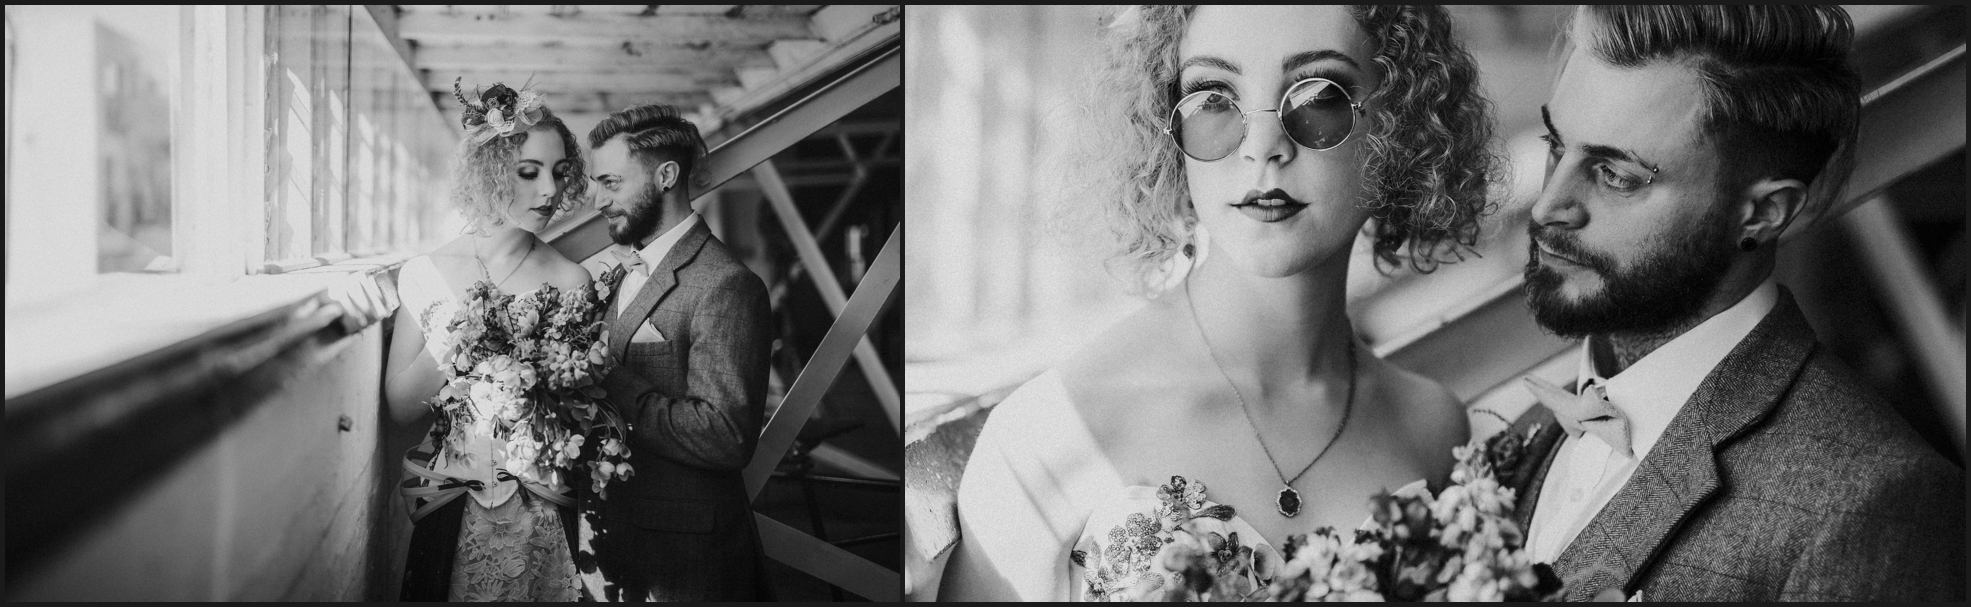 bride, groom, steampunk wedding, alternative wedding photographer, London, intimate, sunglasses, black and white